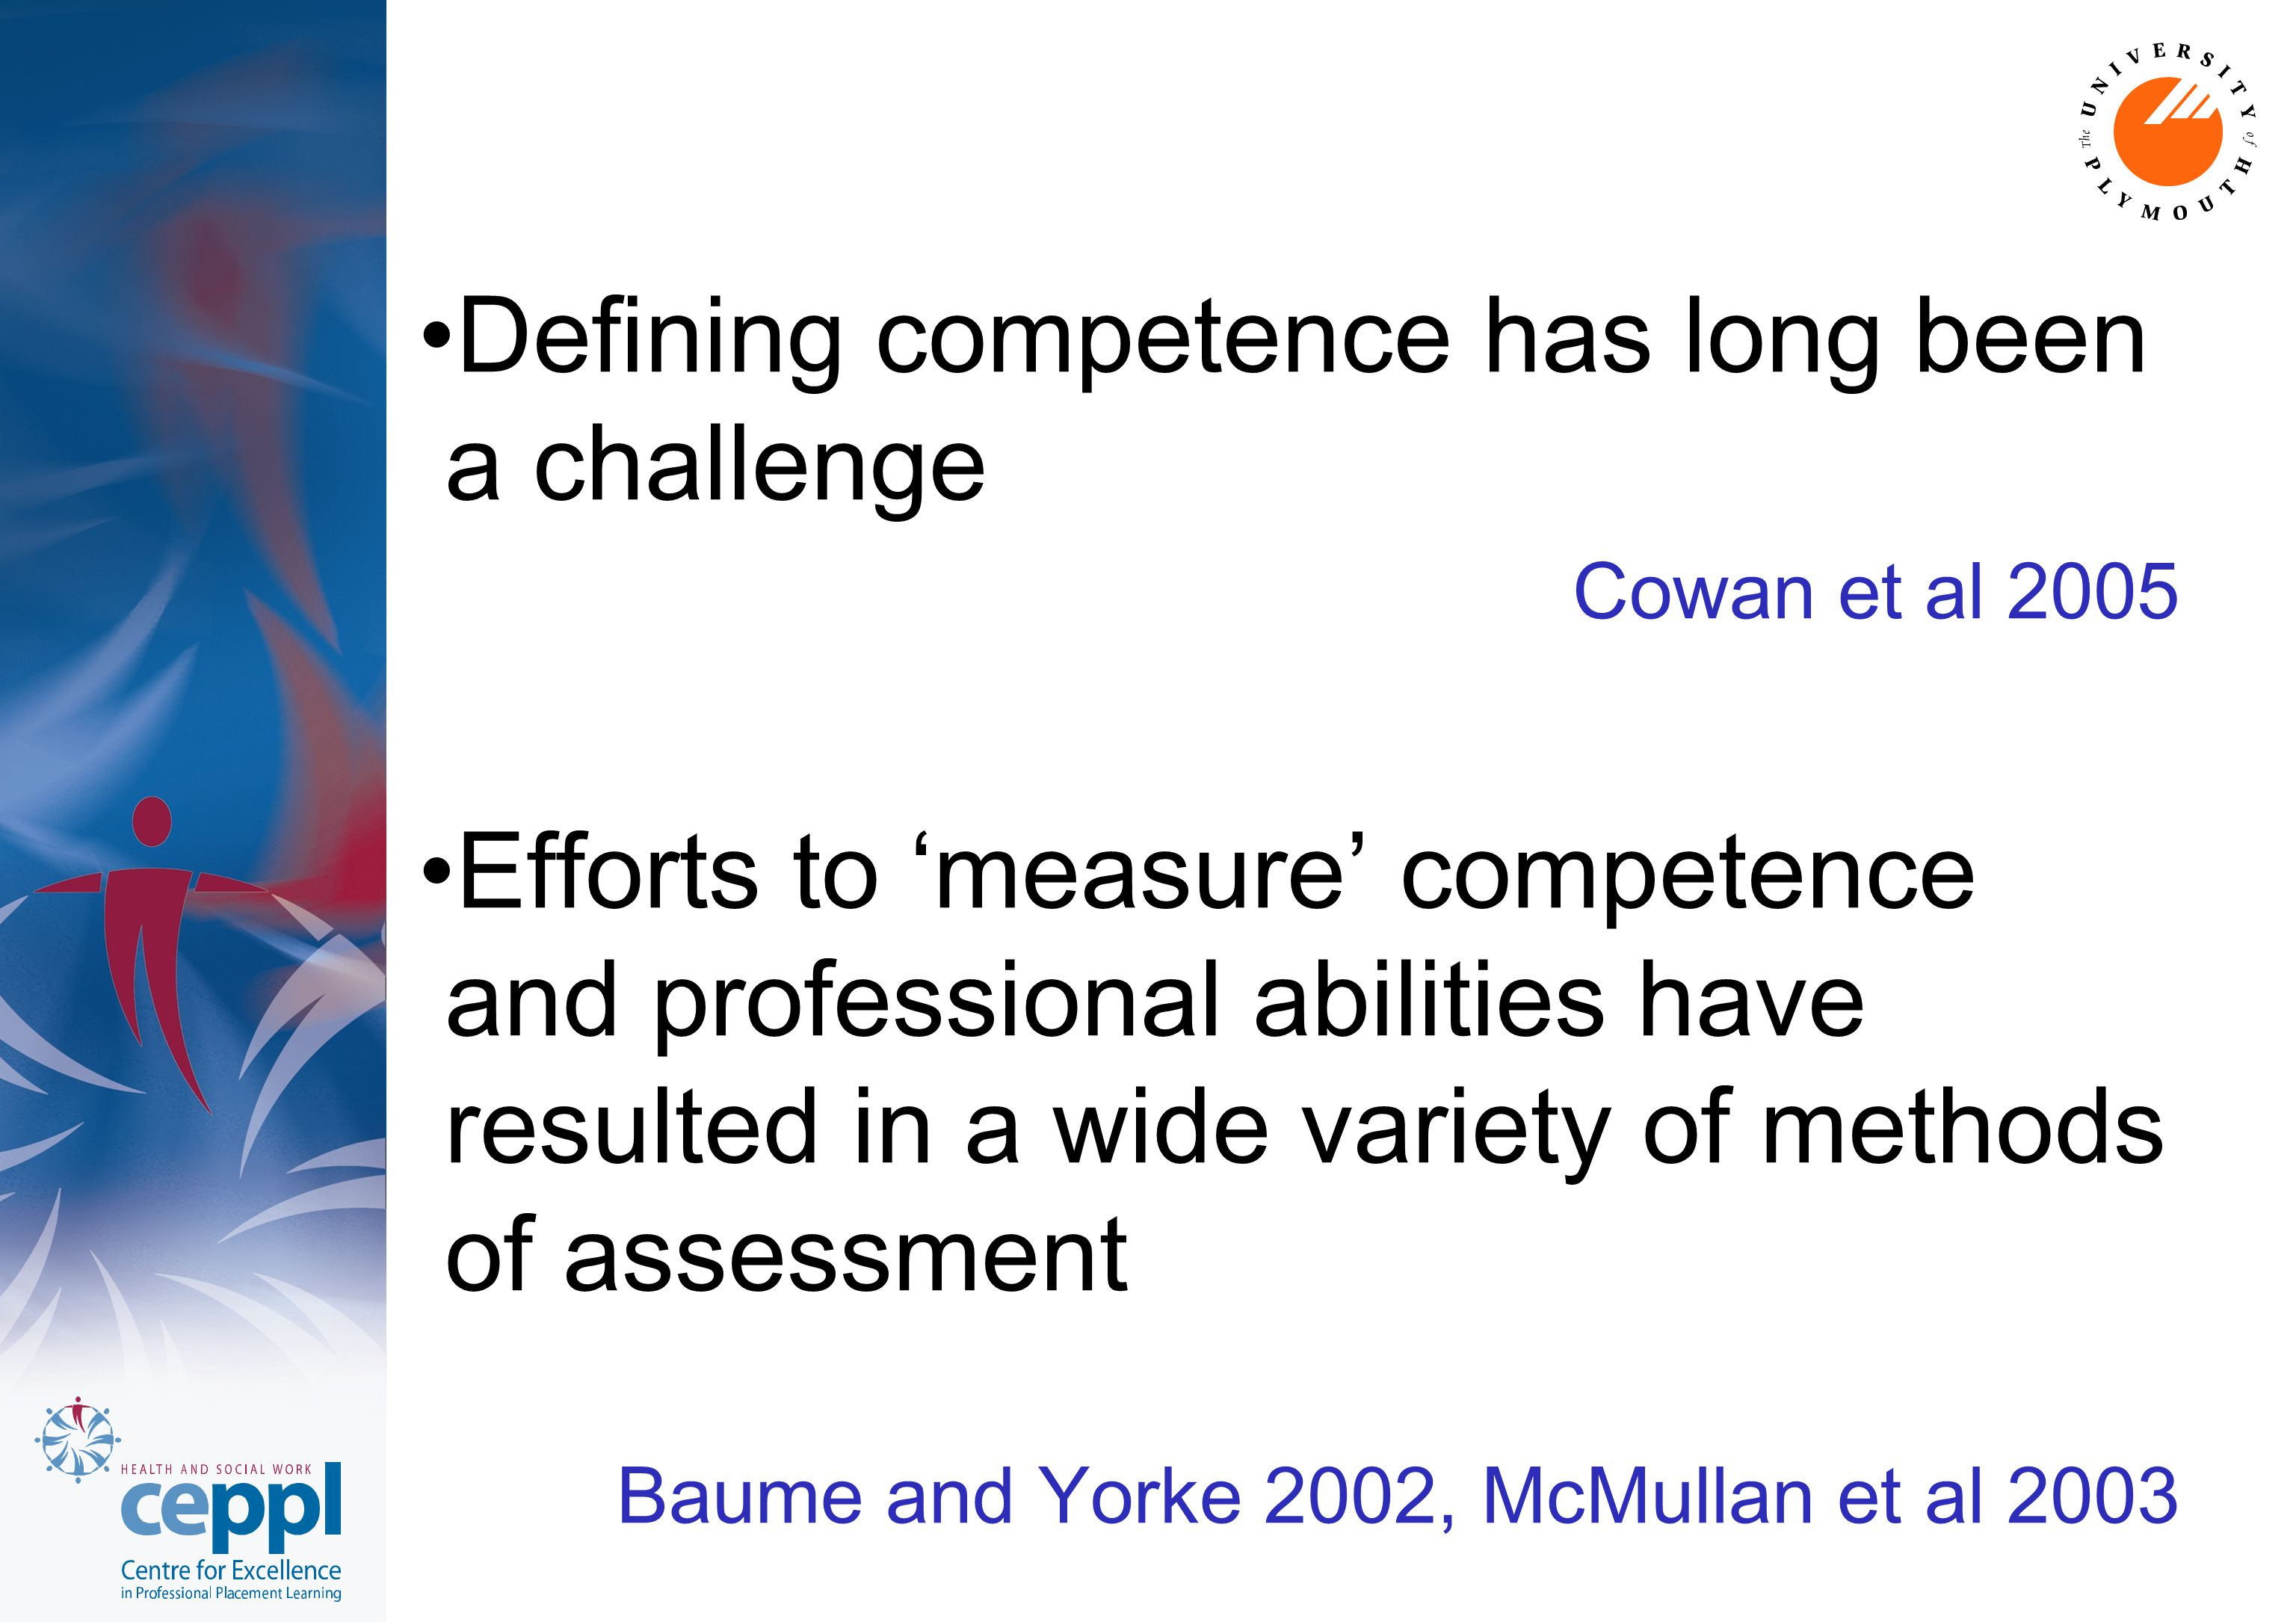 Defining competence has long been a challenge Cowan et al 2005 Efforts to 'measure' competence and professional abilities have resulted in a wide variety of methods of assessment Baume and Yorke 2002, McMullan et al 2003